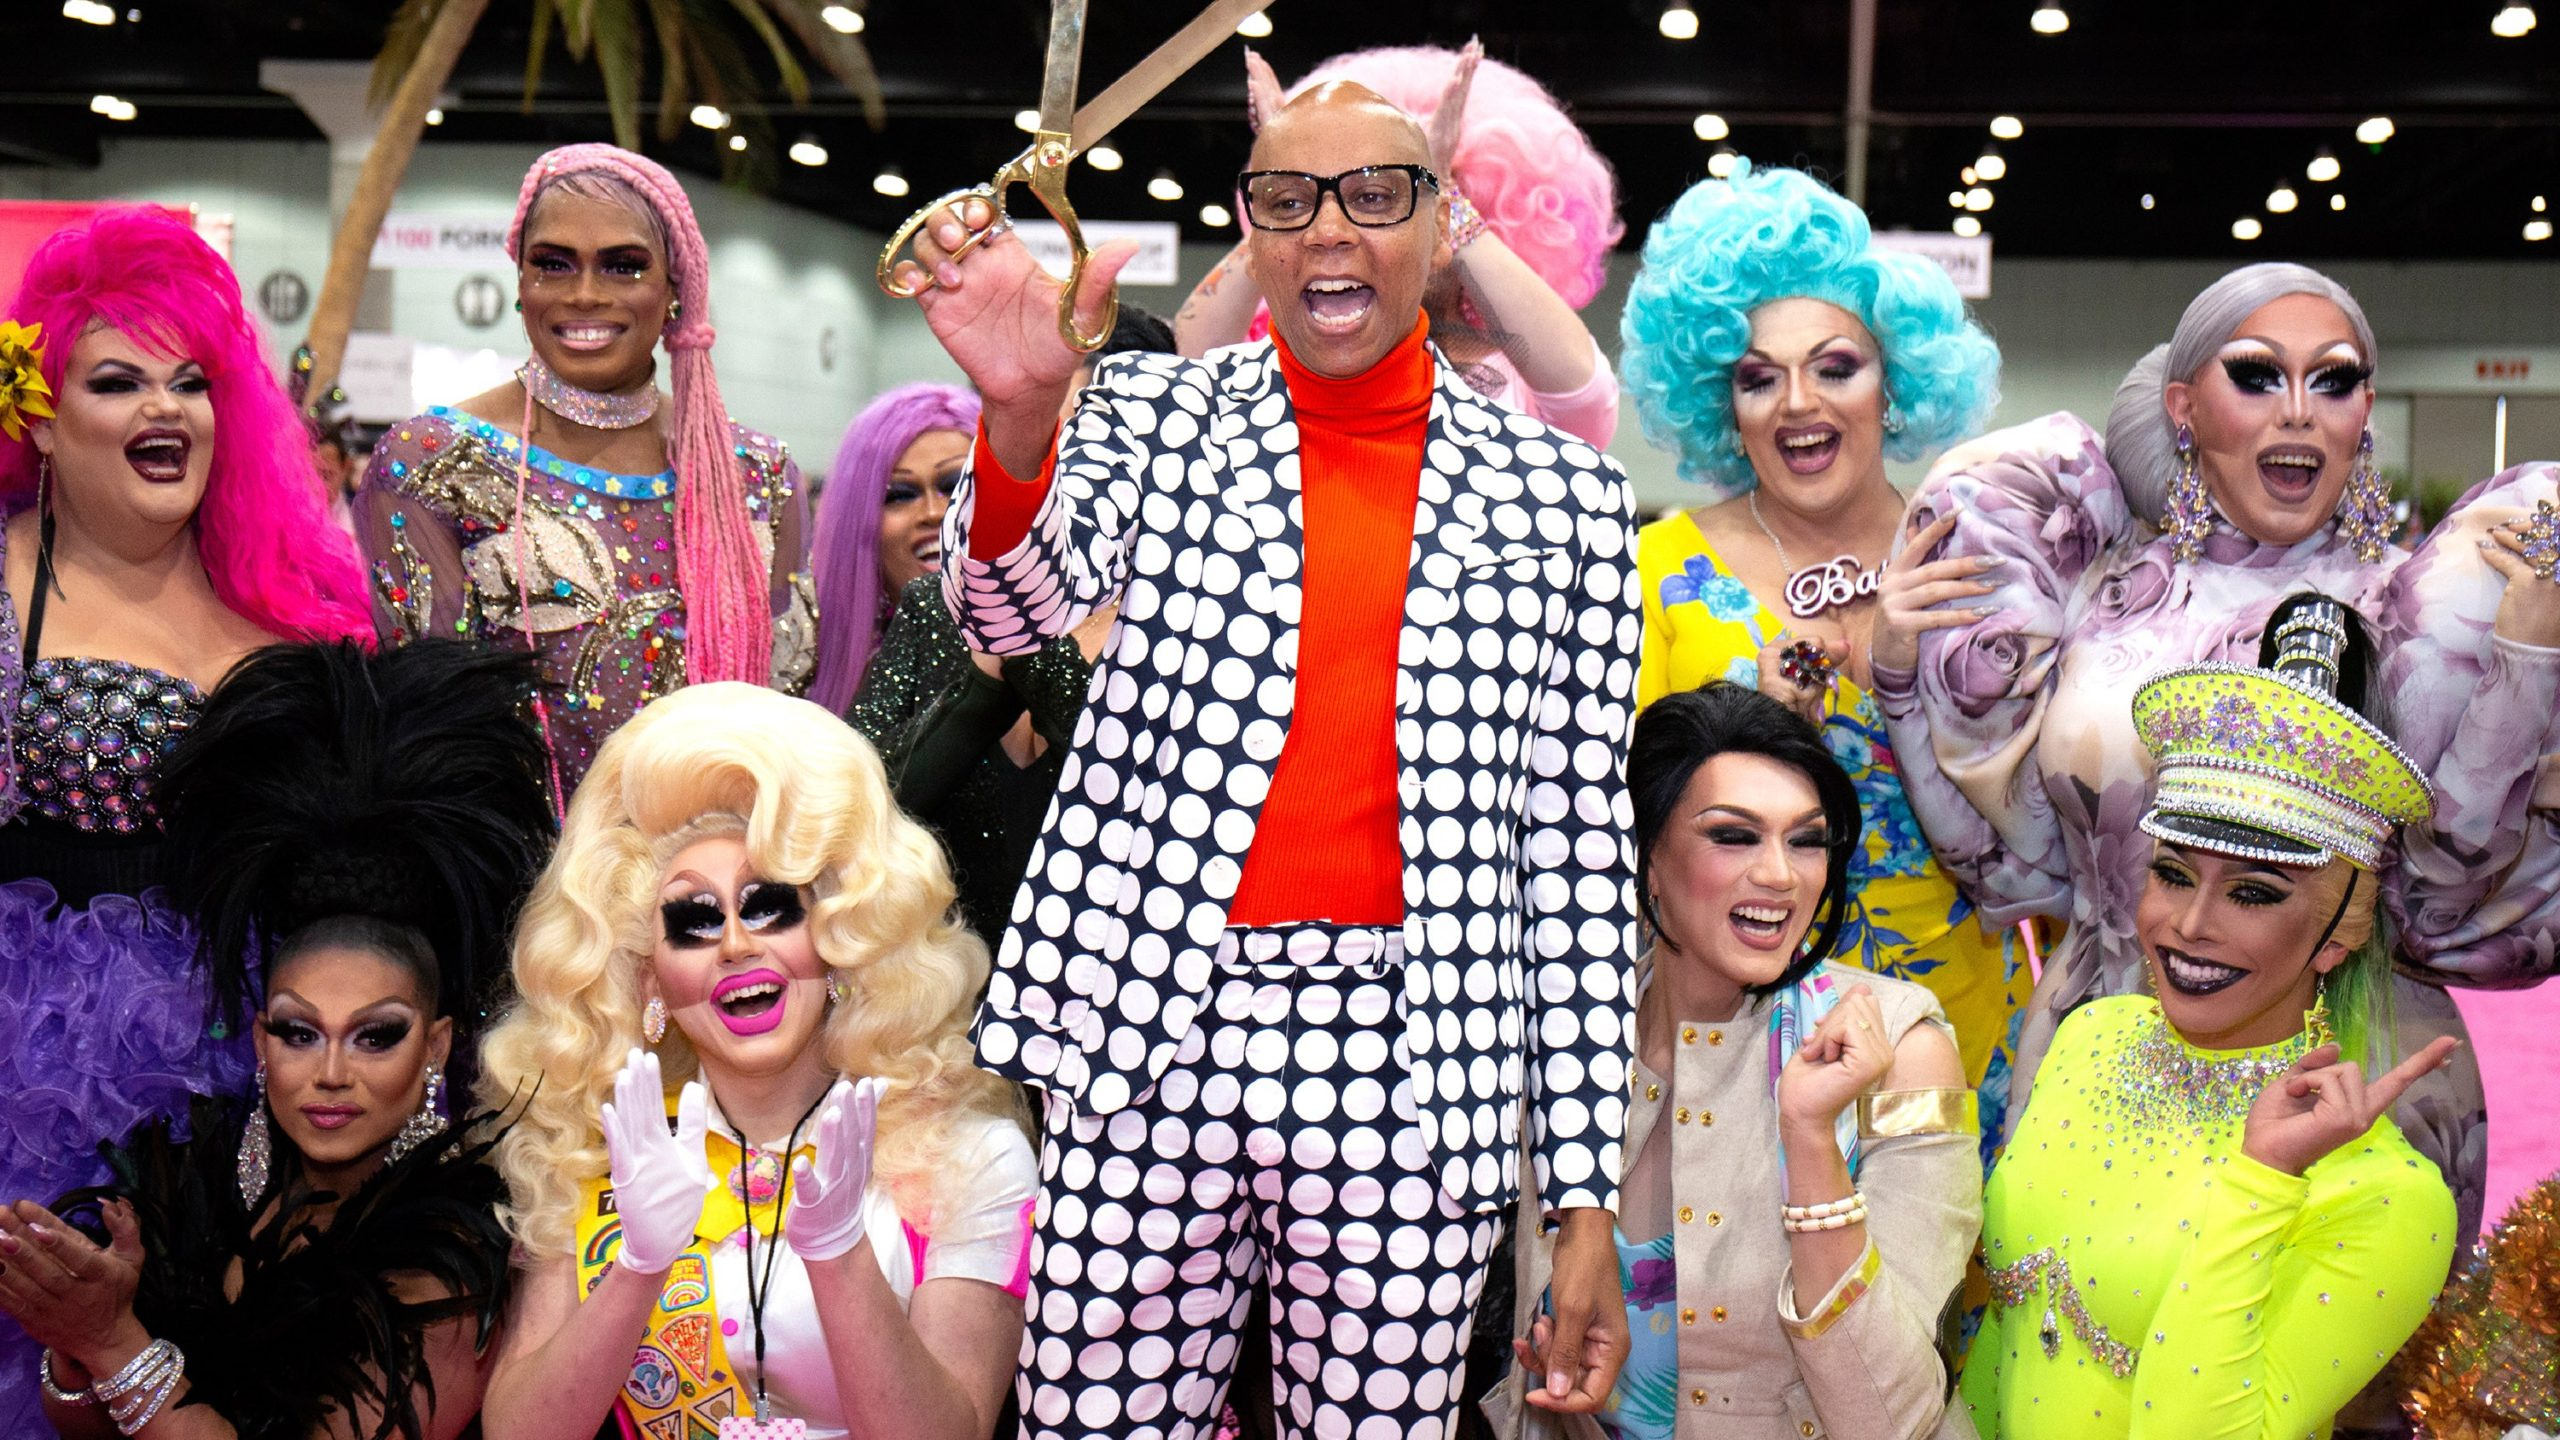 Rupaul, out of drag in a checkered suit, holding a pair of a golden scissors. A crowd of drag queens cheer behind her, including Trixie.